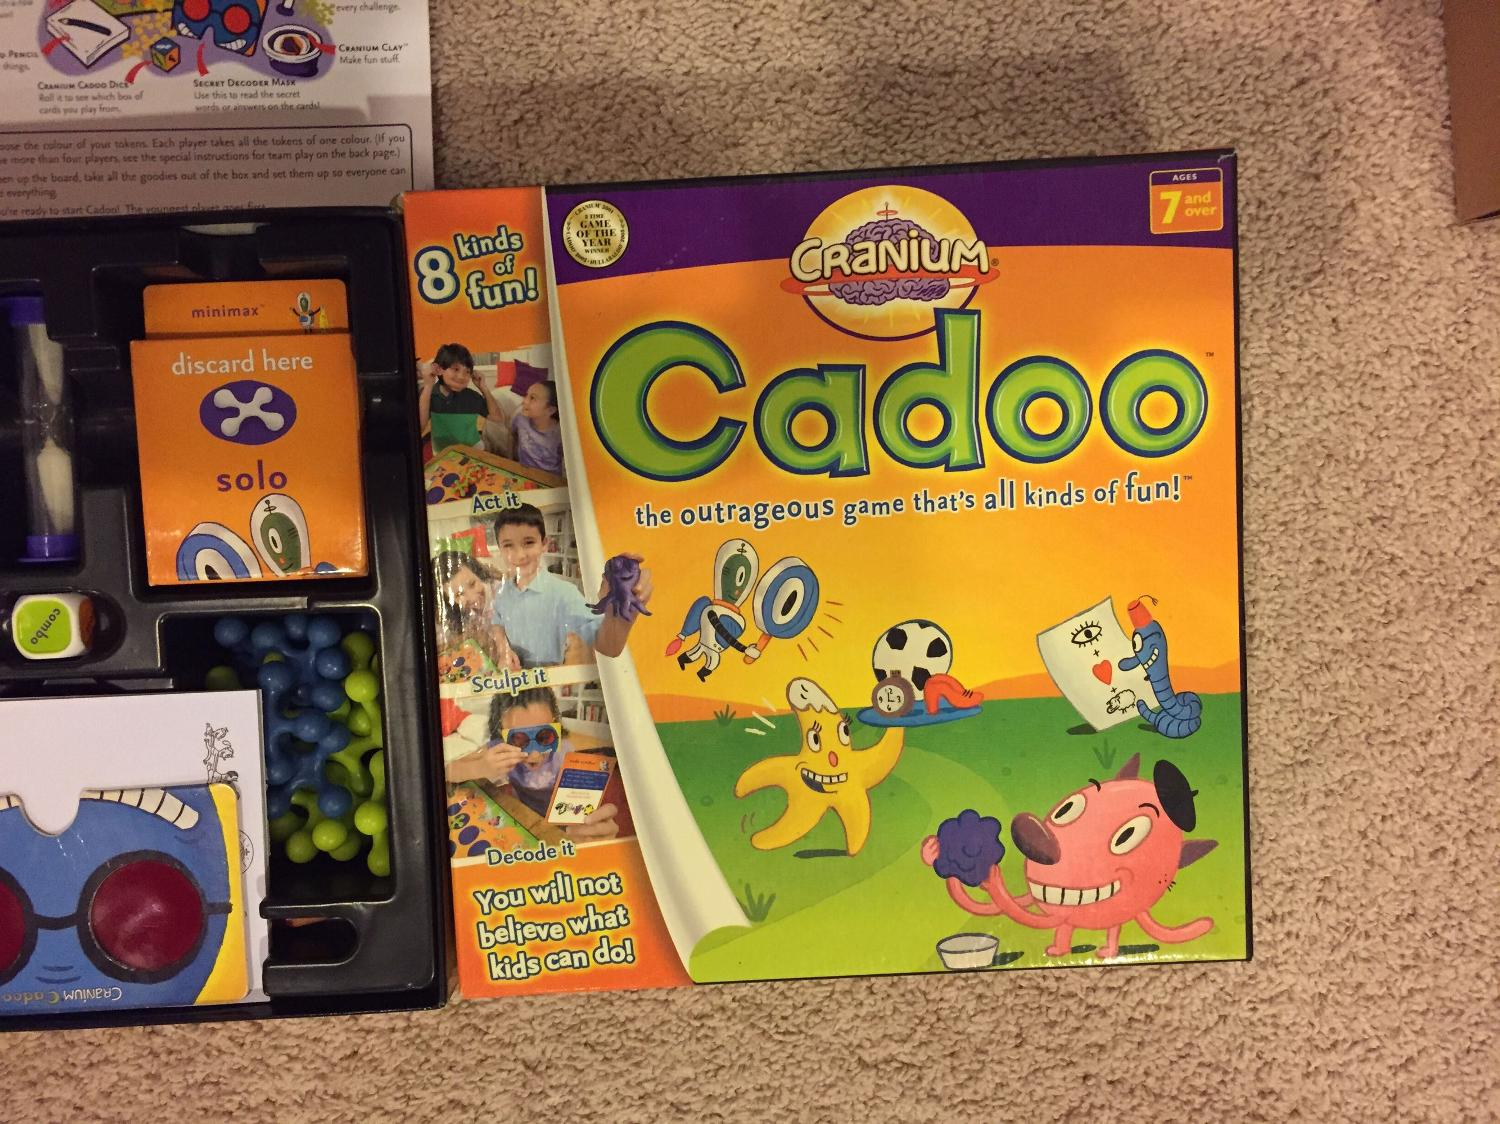 Find More Cadoo Great Game By Cranium For Kids Family Classrooms